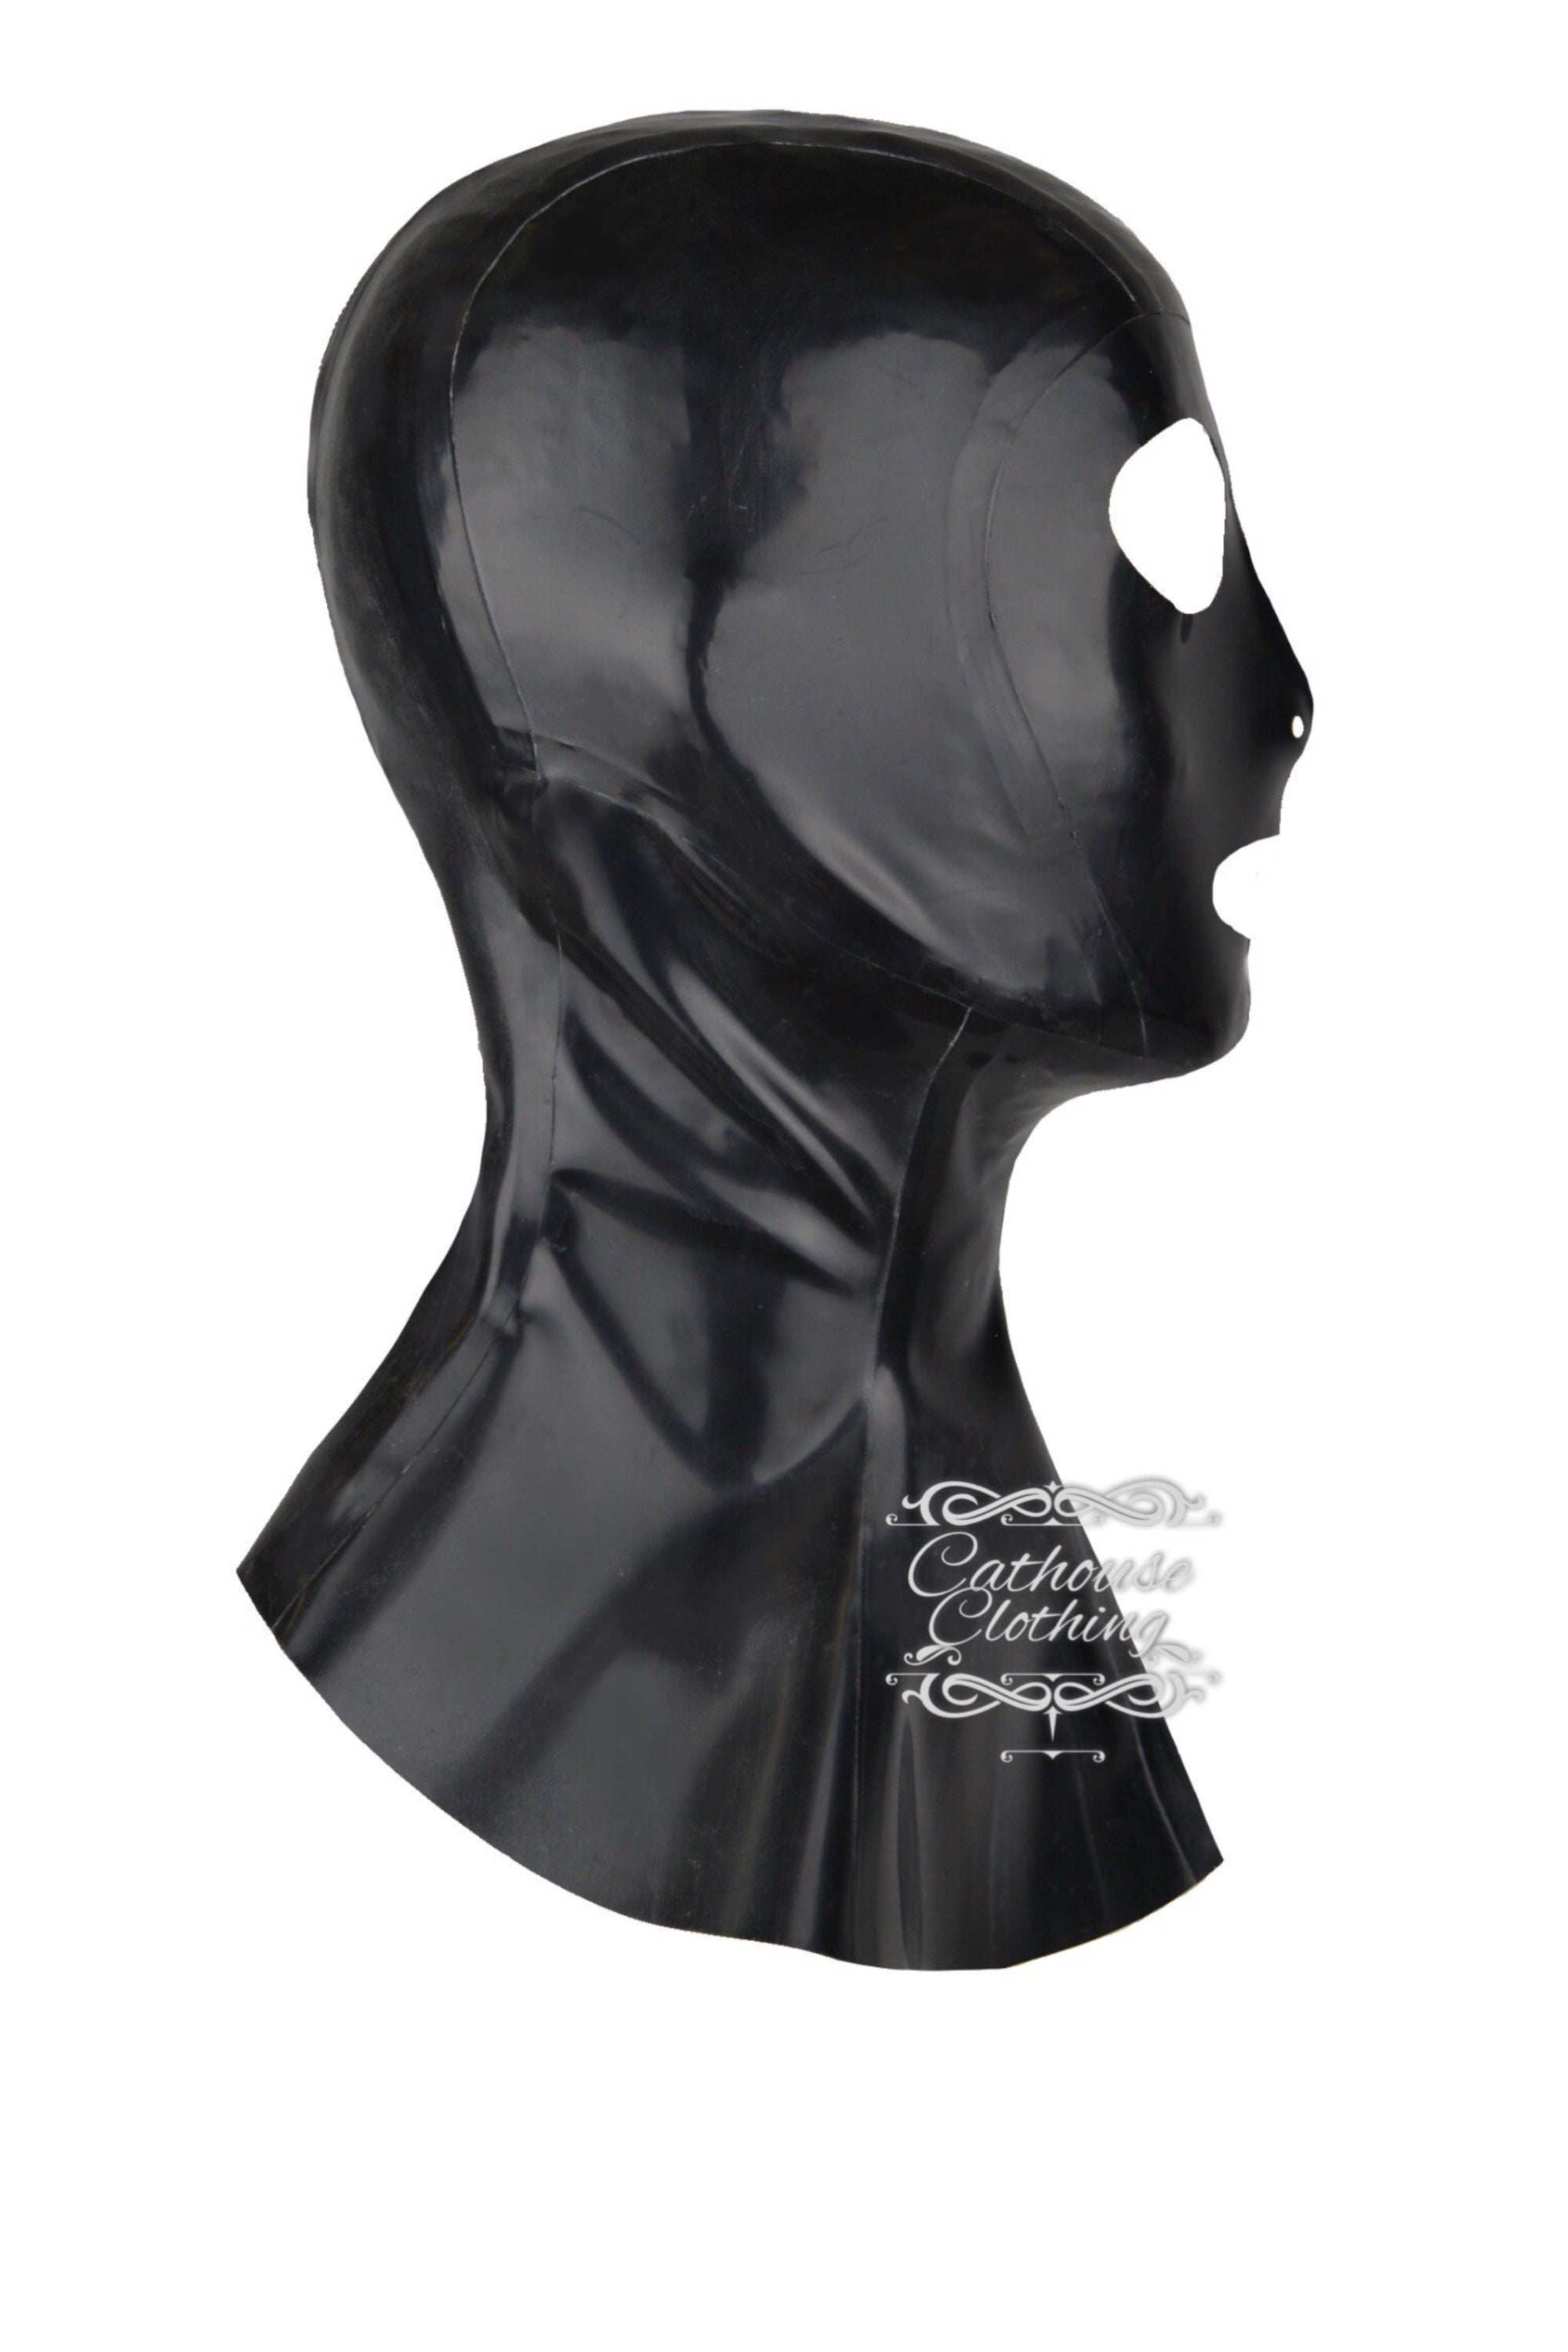 Latex hangman hood